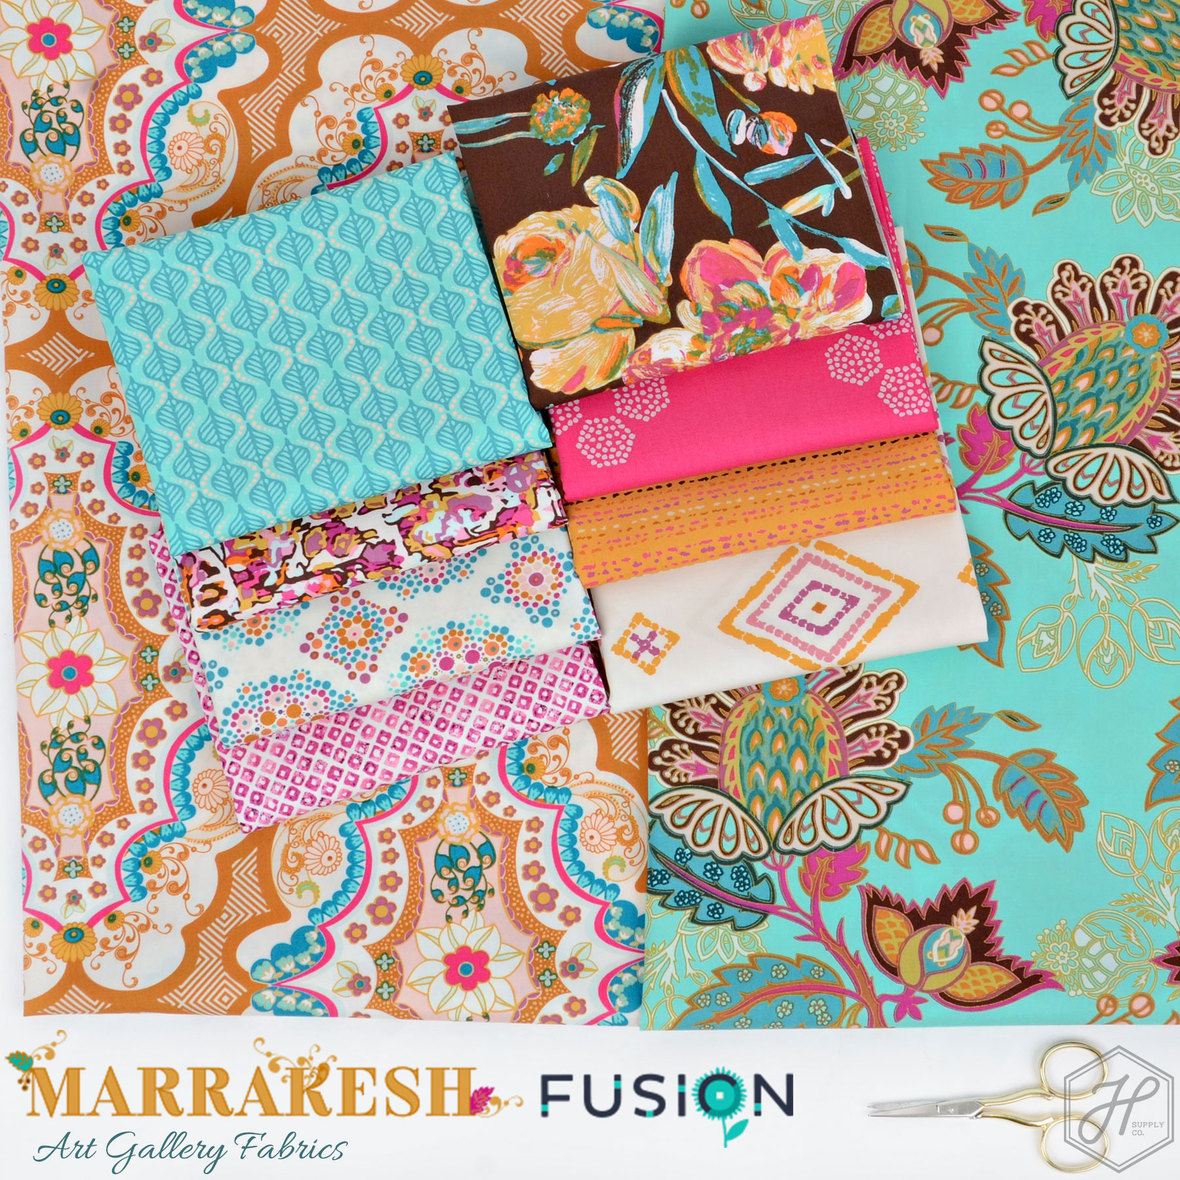 Marrakesh-Fusion-Fabric-Art-Gallery-at-Hawthorne-Supply-Co